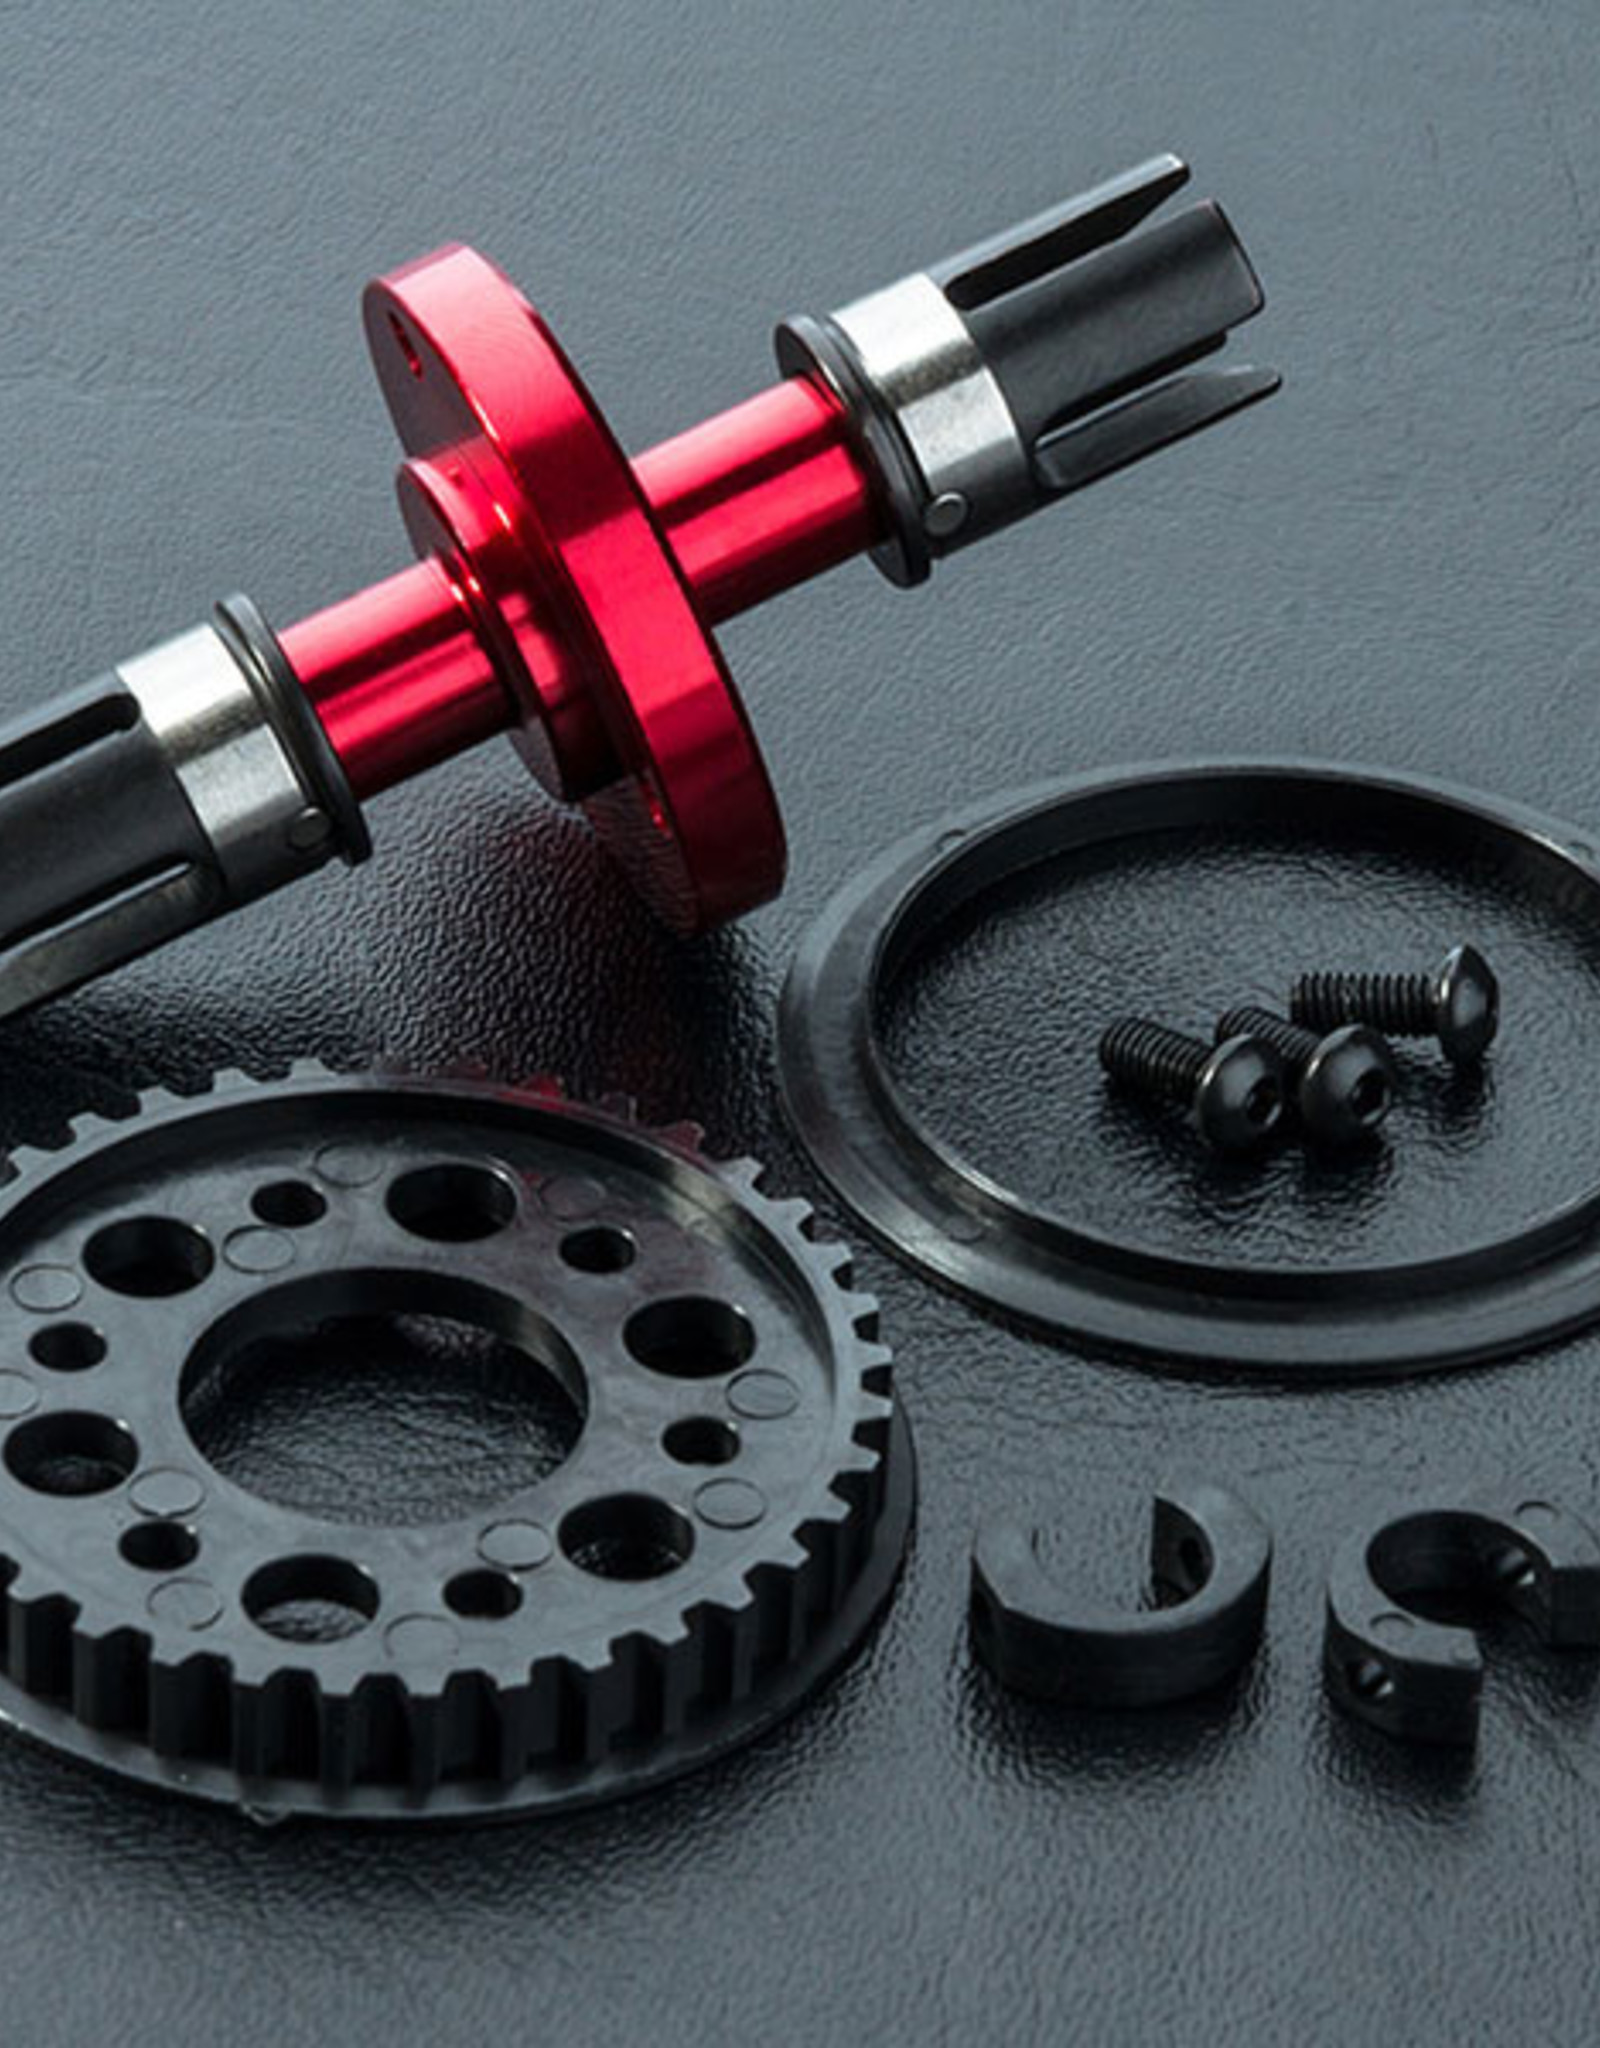 MST MXPSD210436R RMX Alum. solid axle set (red) by MST